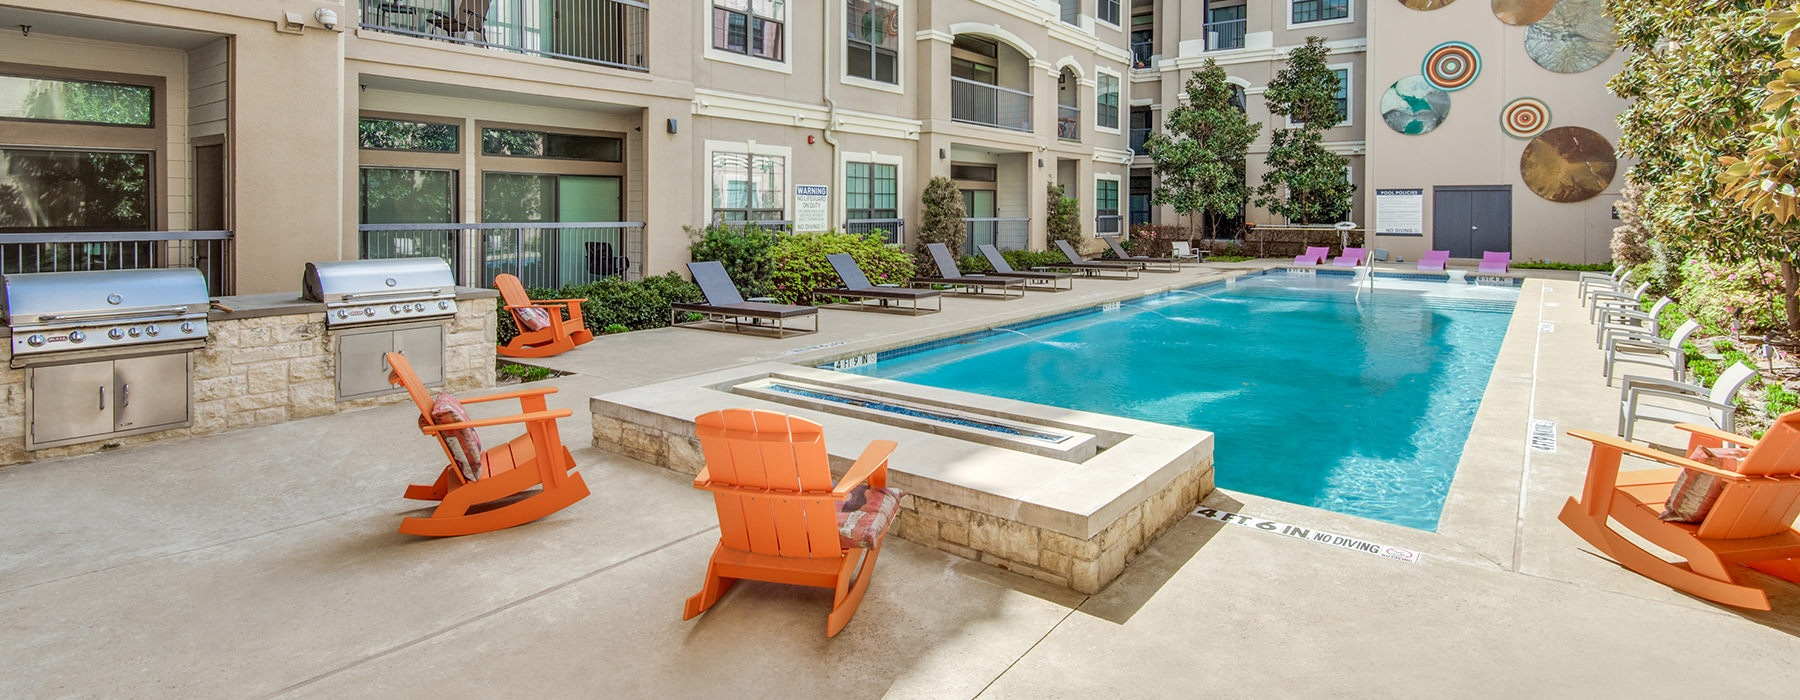 Large sparkling pool with sundecks and ample lounge chairs.